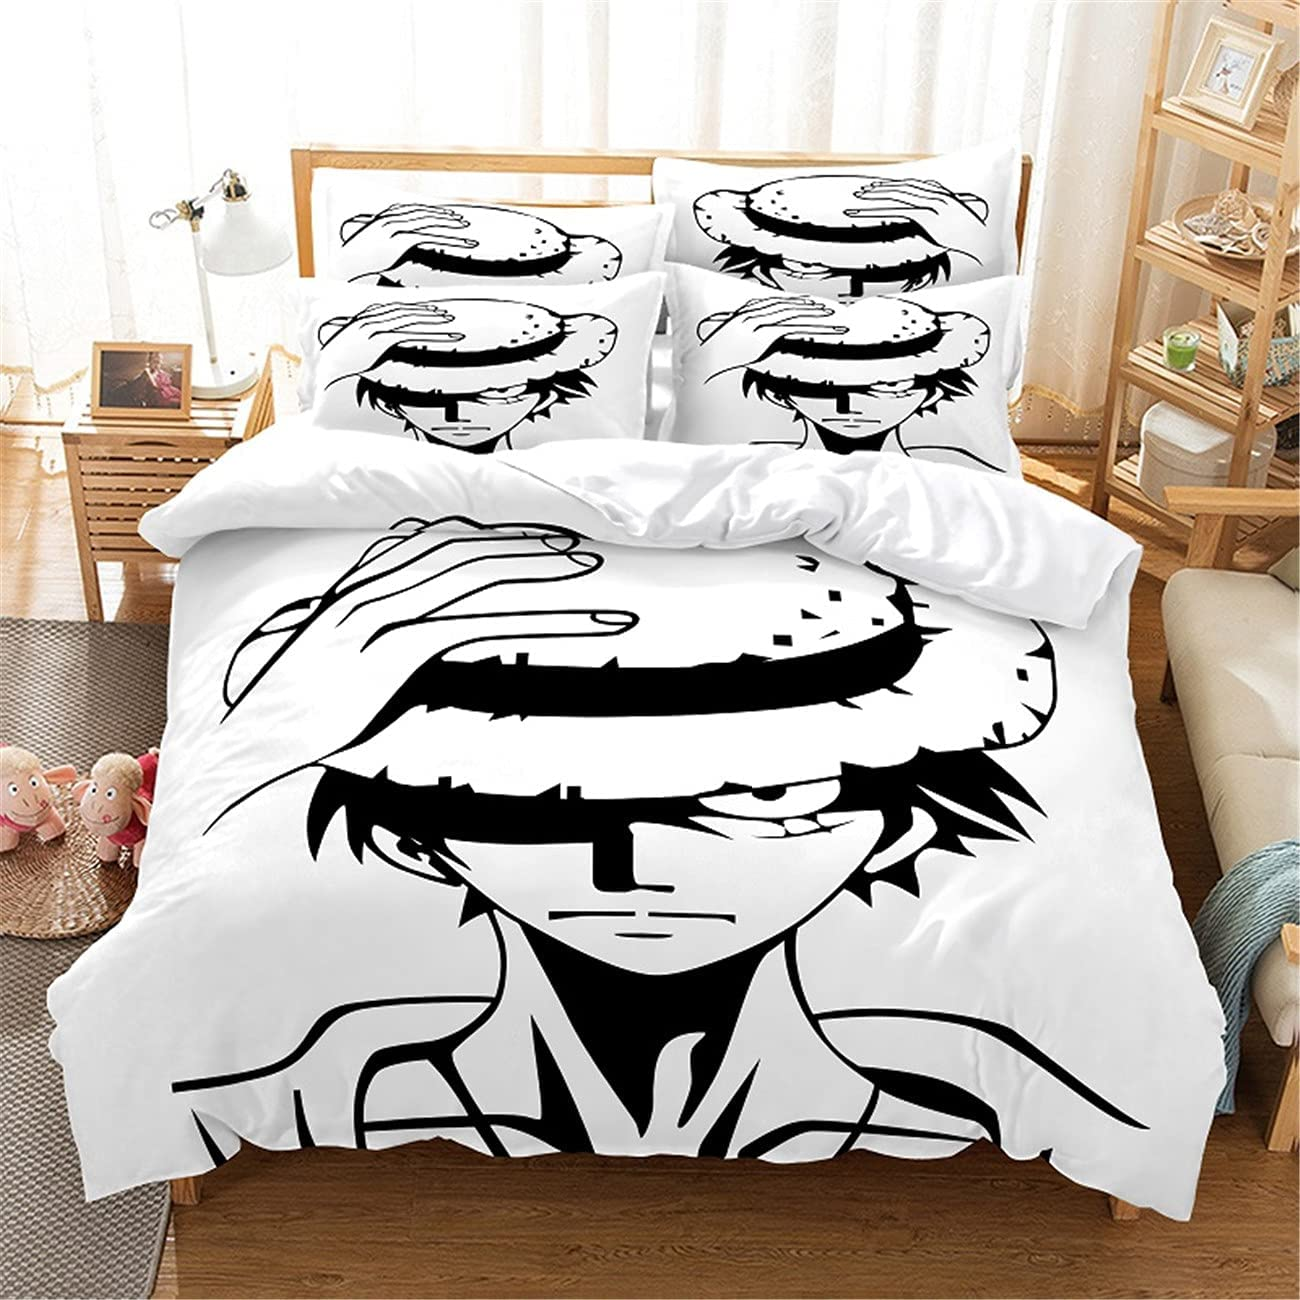 MANXI Seasonal Wrap Introduction safety Double Quilt Cover Home Decoration Bedding Bedroom Black